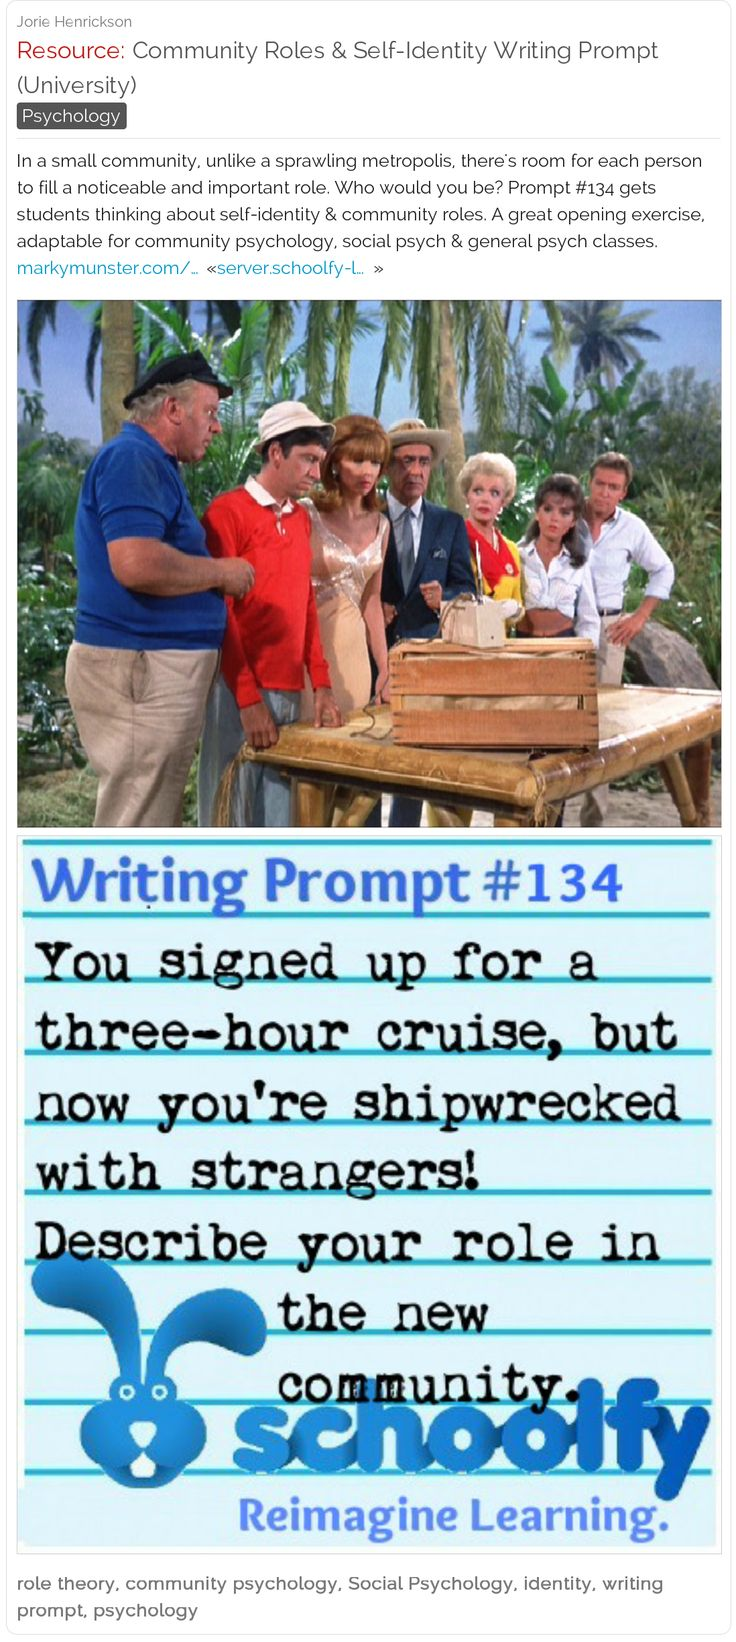 Community Roles & Self-Identity Writing Prompt (University): This prompt gets students thinking about self-identity & community roles. A great opening exercise, adaptable for community psychology, social psych & general psychology classes. #firstday #backtoschool #writingprompt #gilligansisland